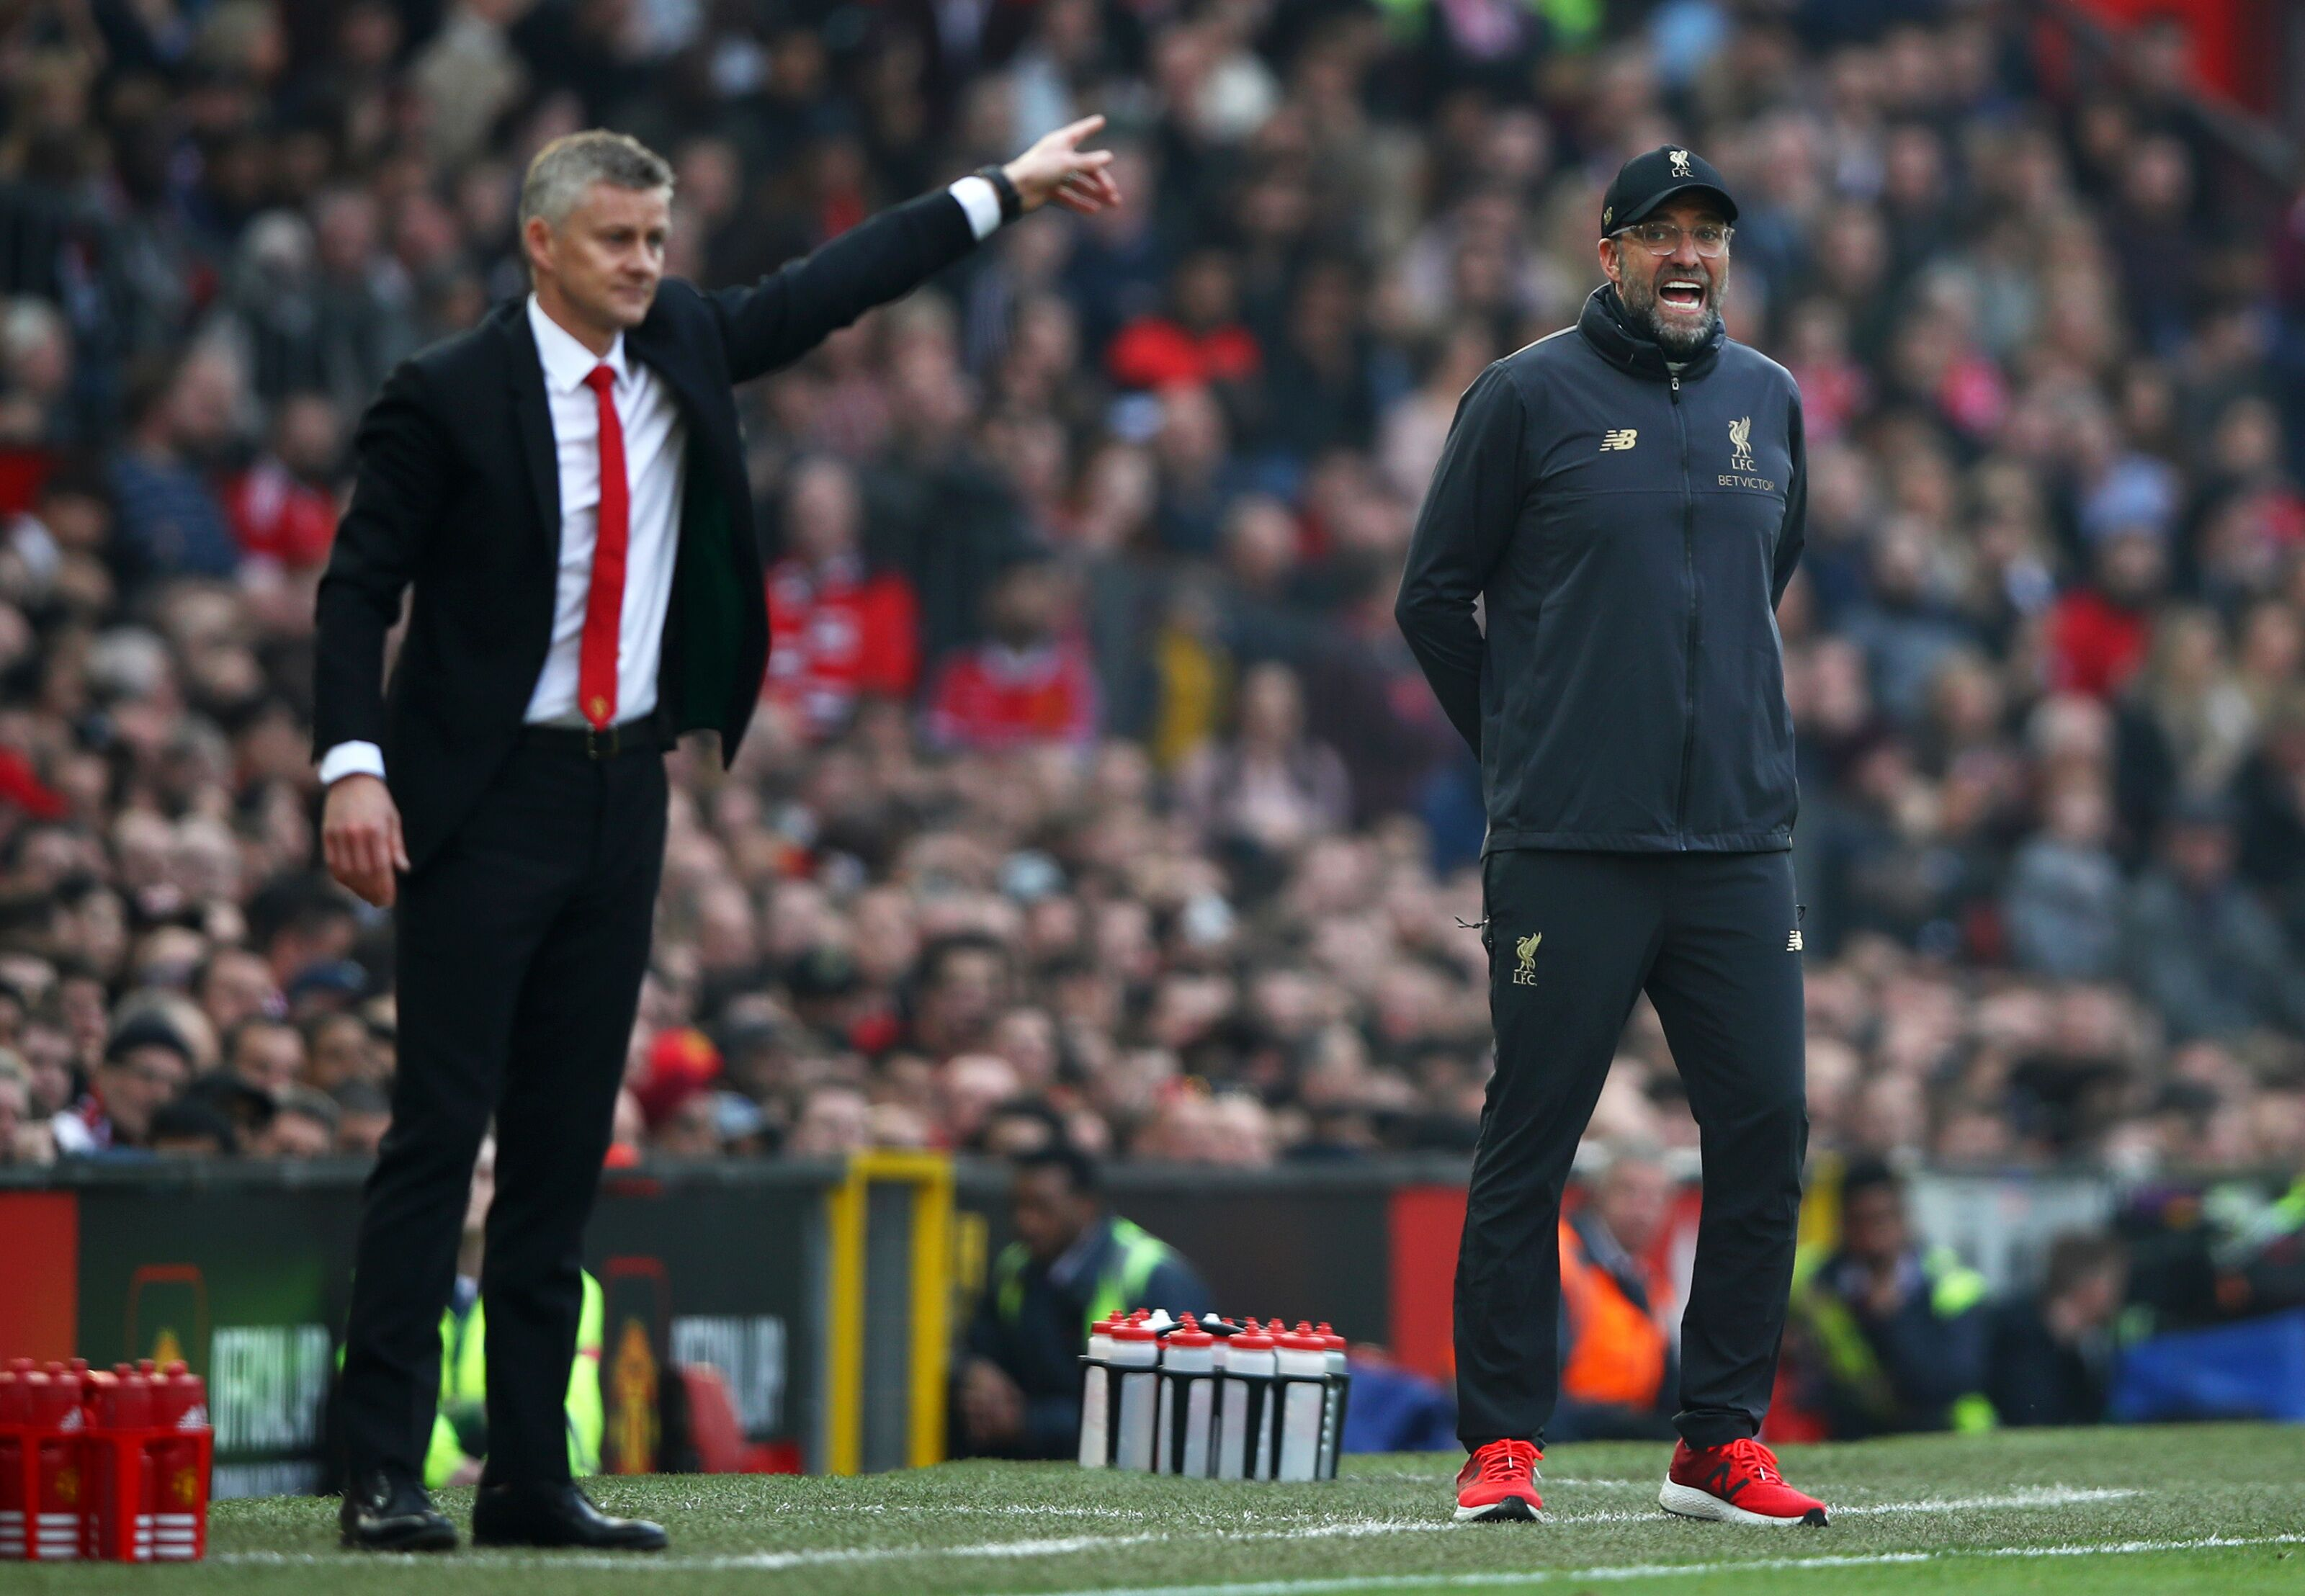 Liverpool: Sky Sports hilarious comparison between Klopp and Solskjaer